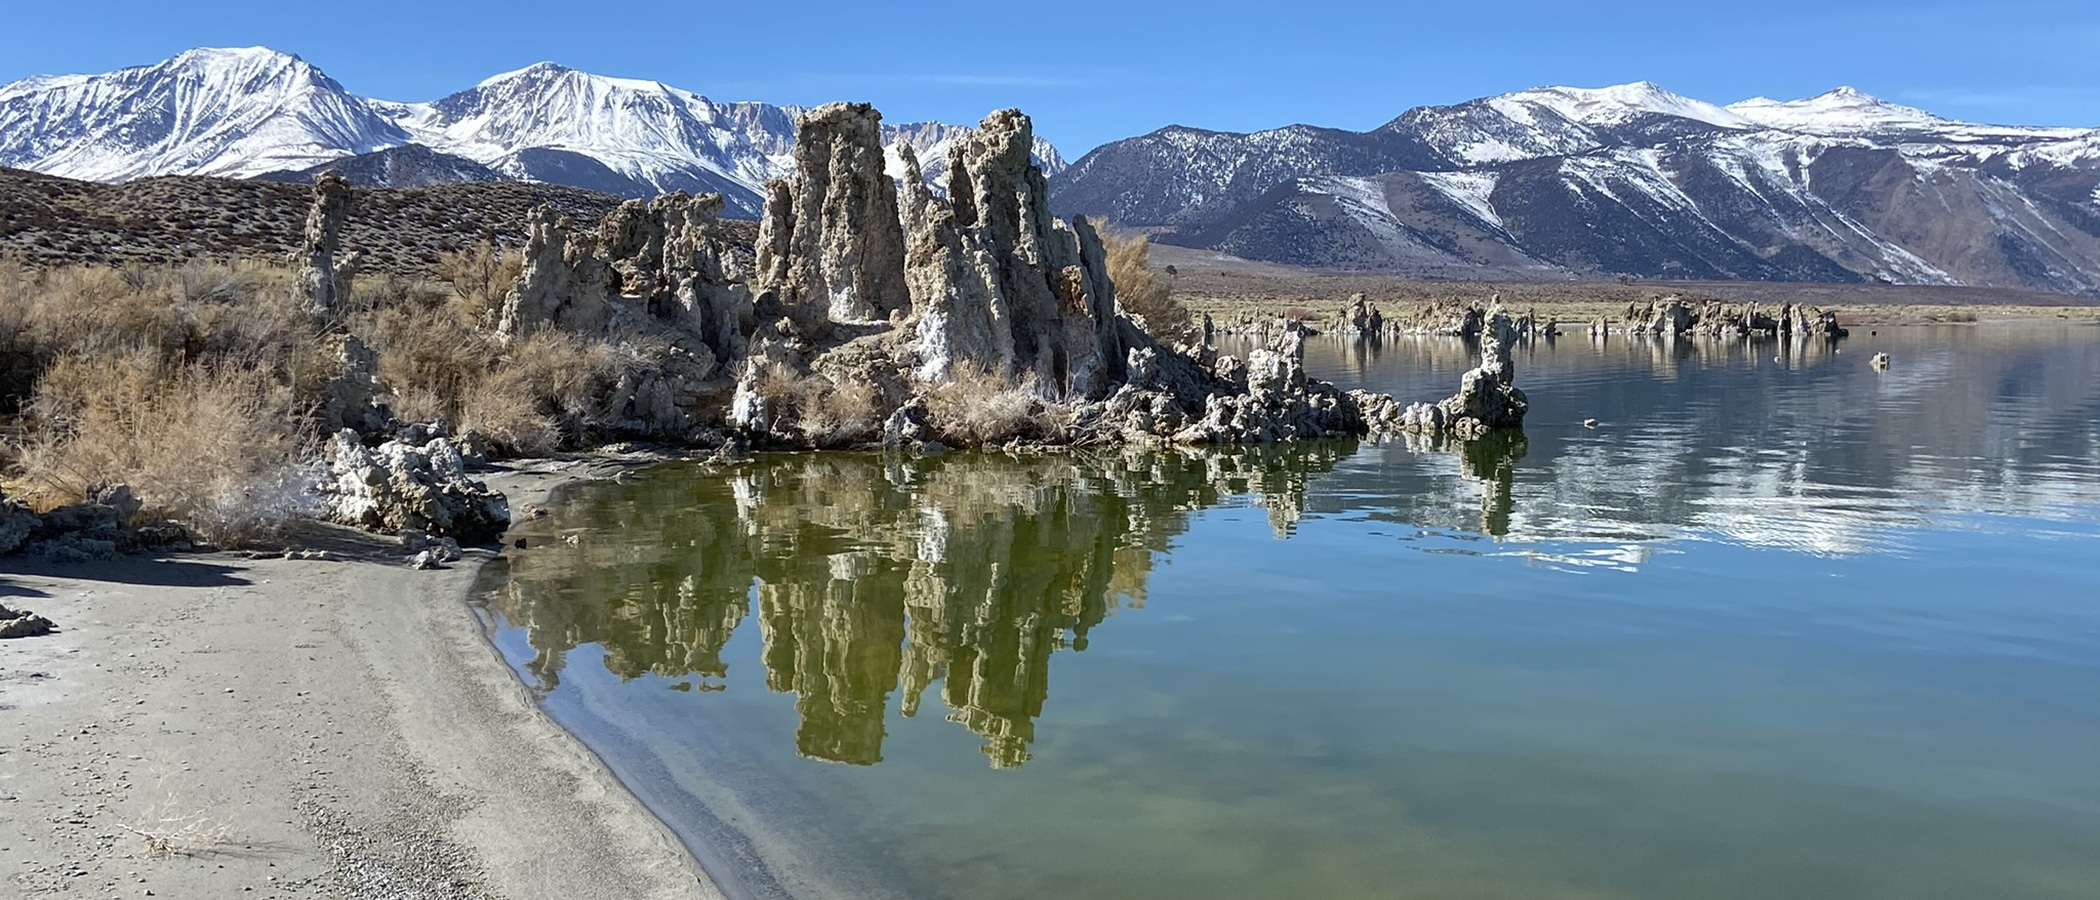 Tufa towers stand tall in turquoise Mono Lake water, with snowcapped Sierra Nevada mountains behind it.